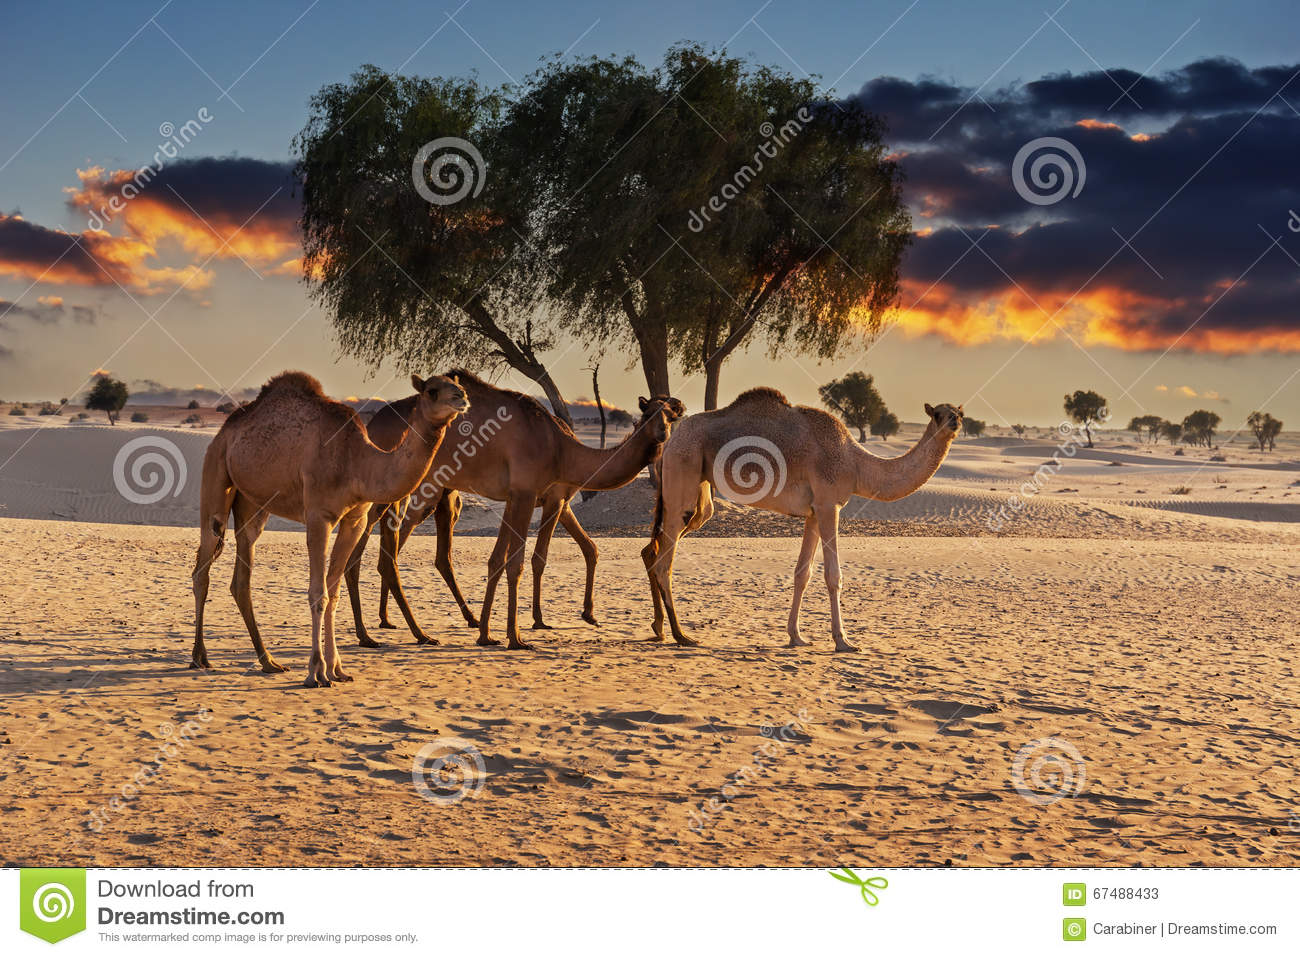 Camels In The Desert At Sunset Stock Image - Image of ...